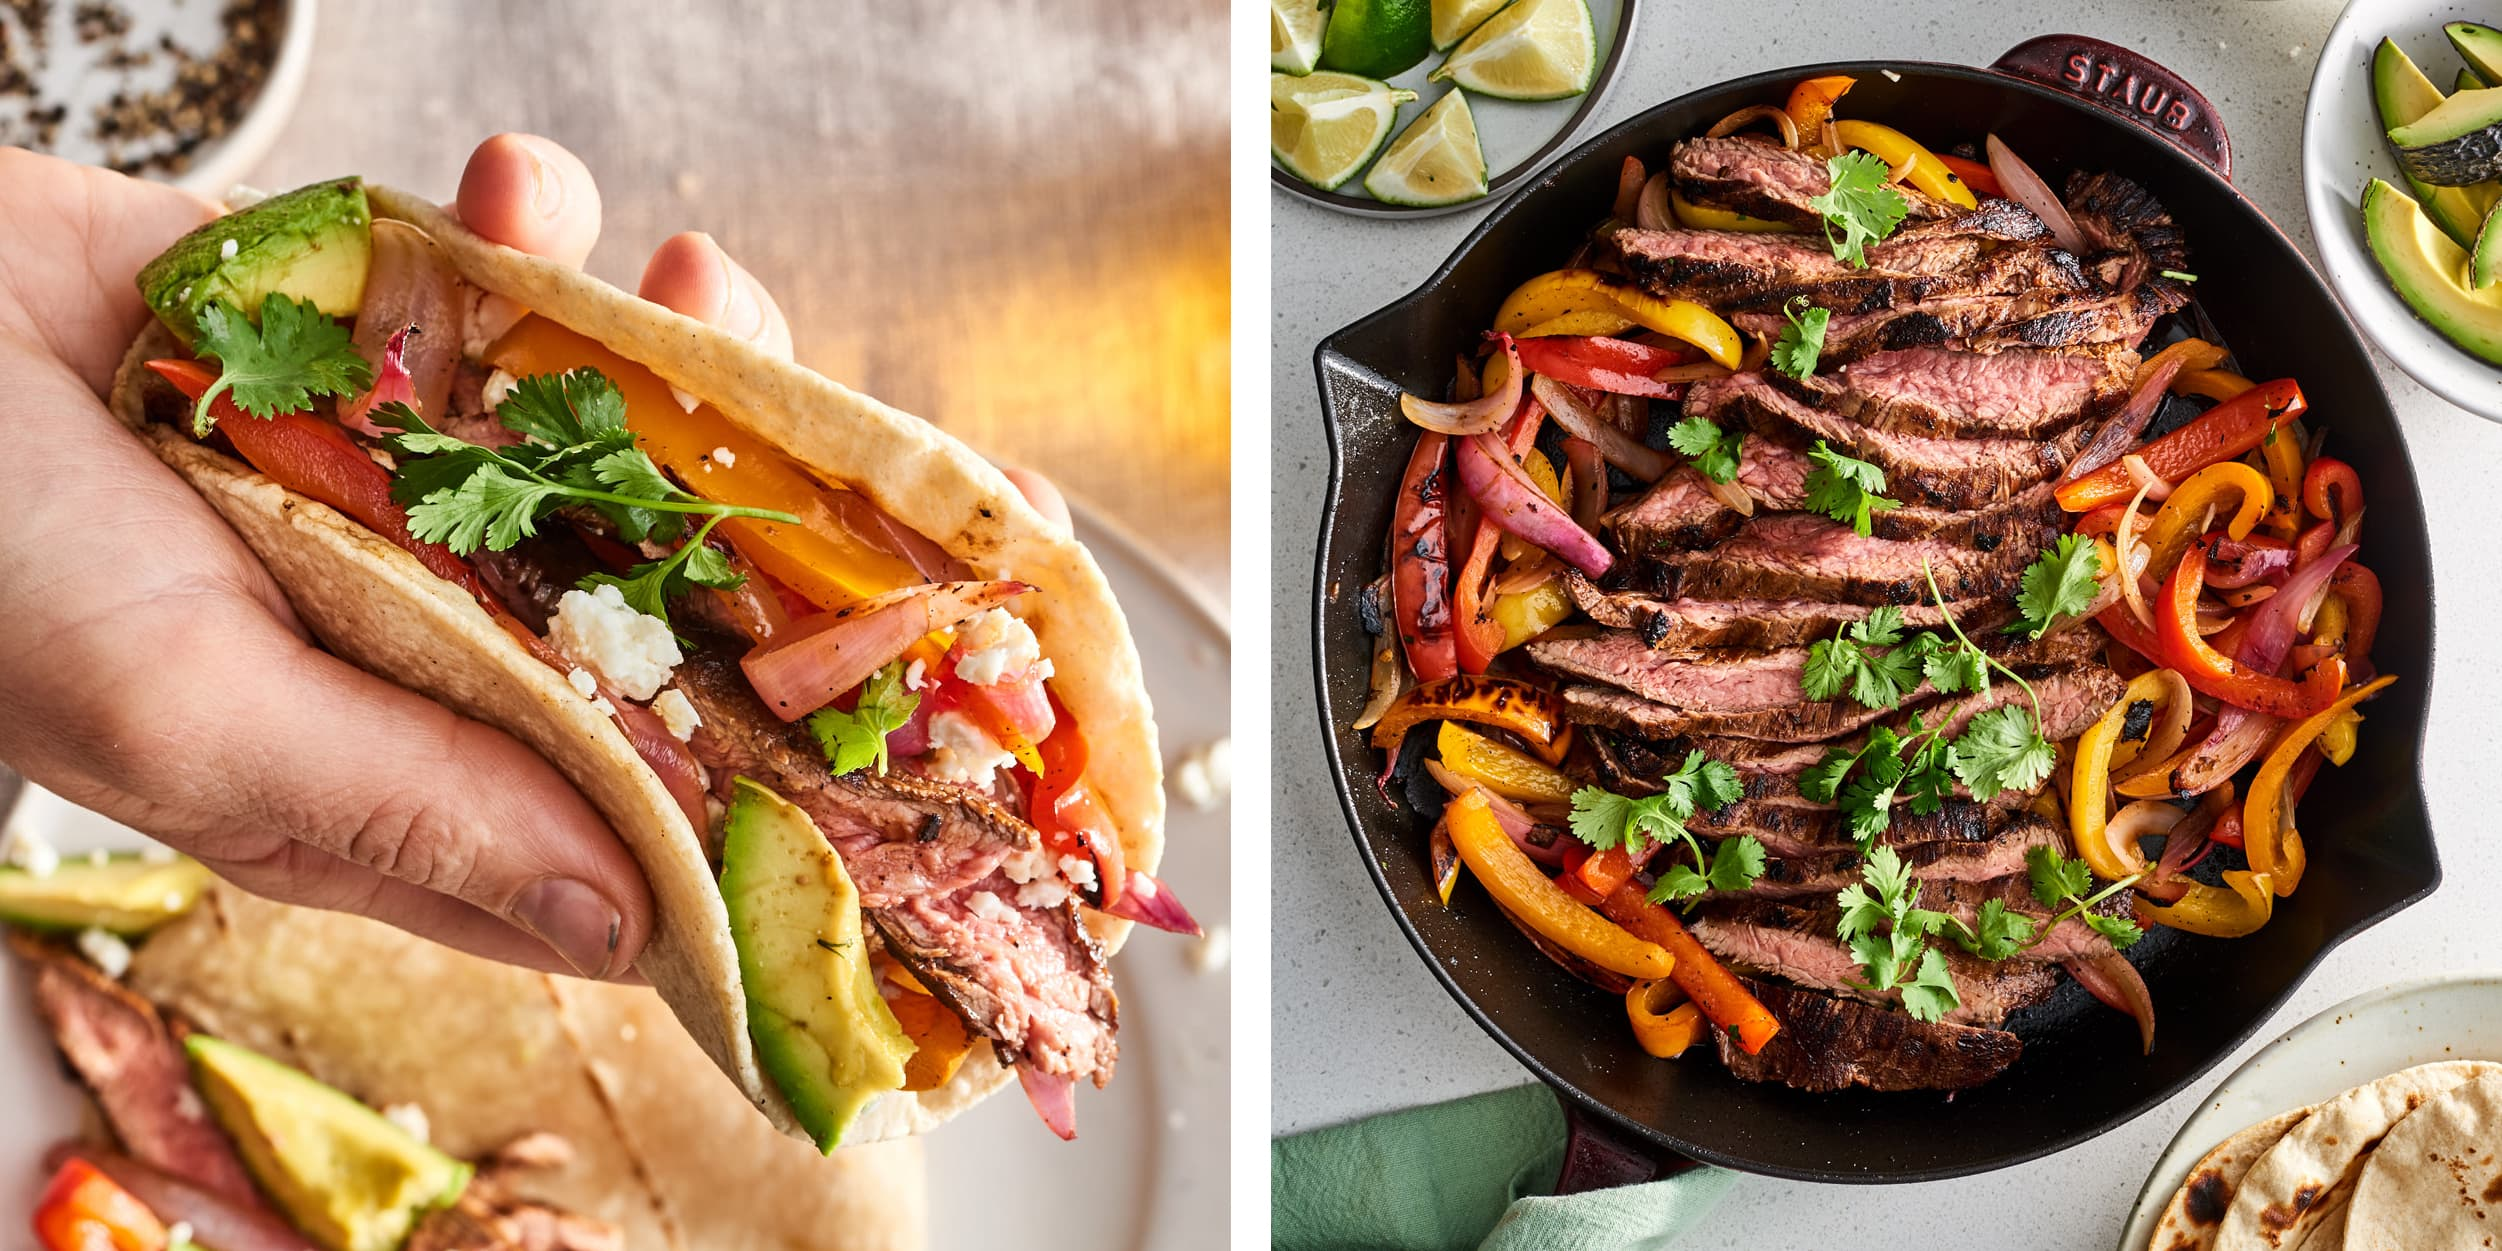 Here's How to Make the Best Restaurant-Style Steak Fajitas at Home